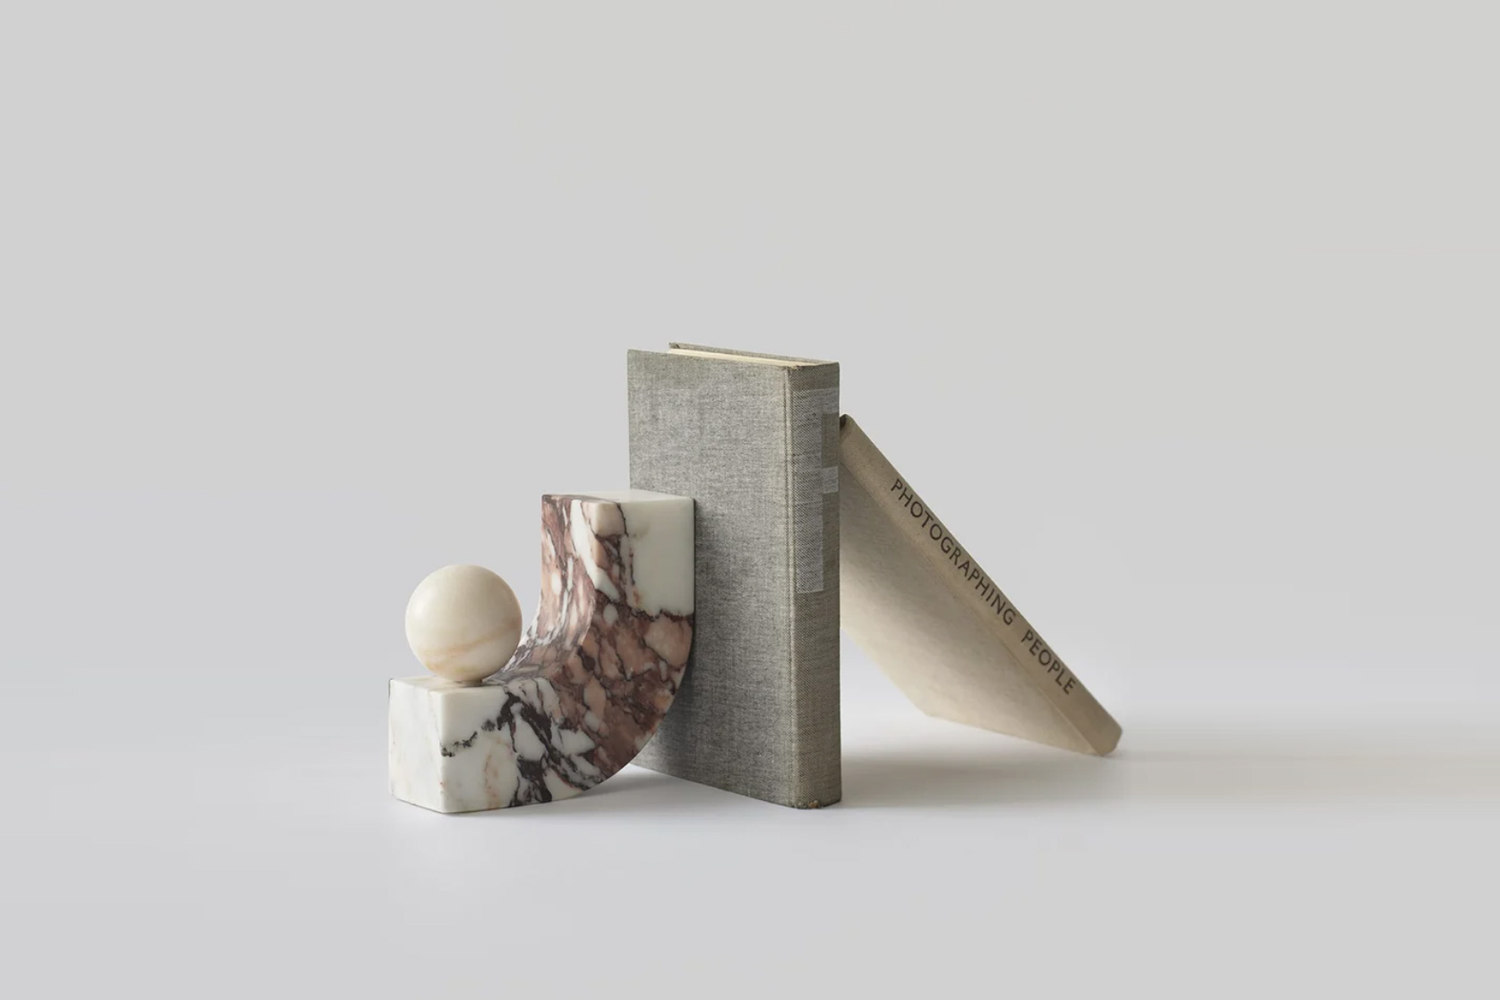 the equi bookend in calacatta viola marble is \2,800 sek at artilleriet. 22